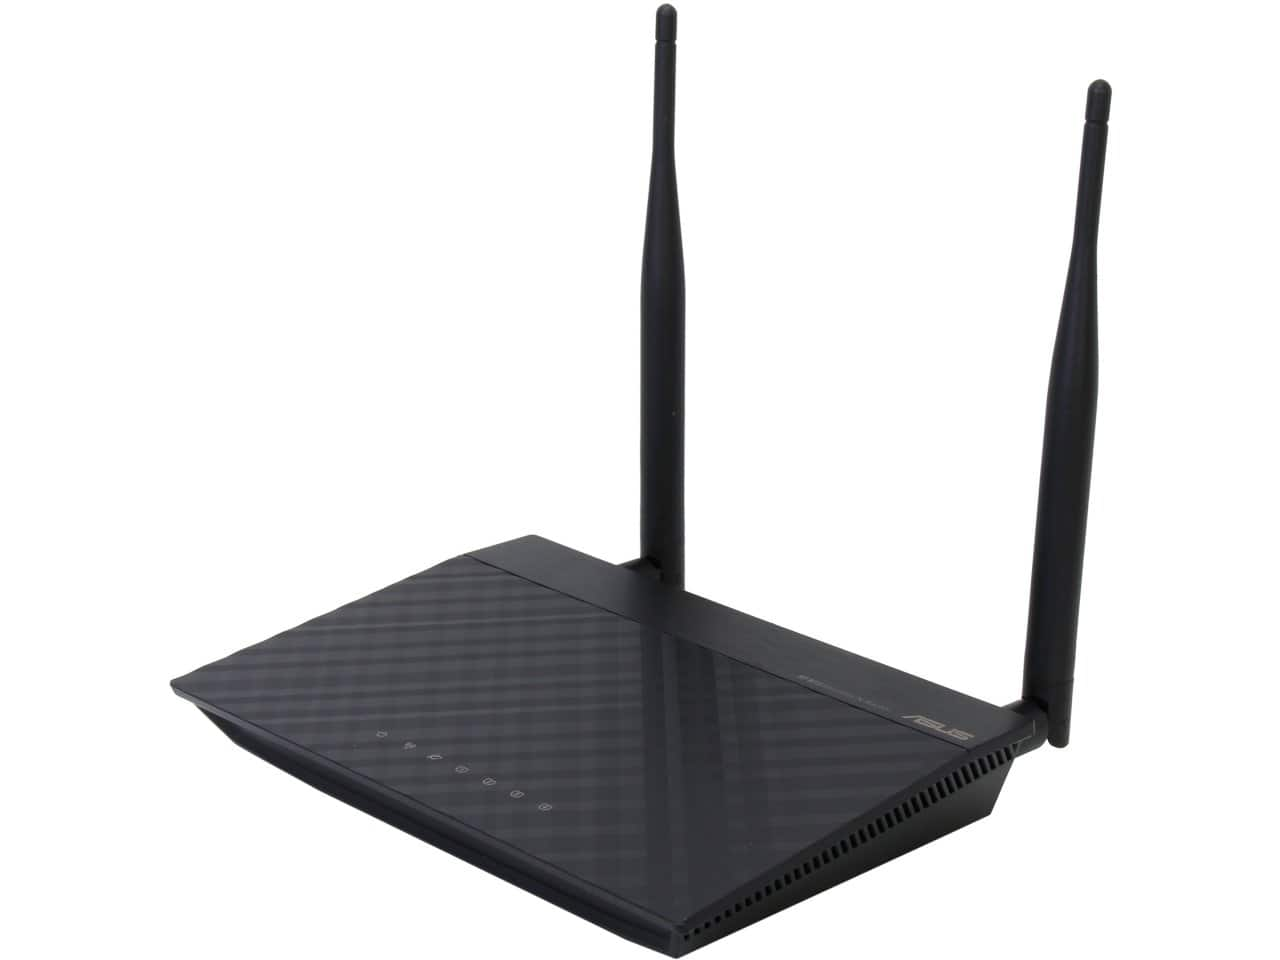 Asus RT-N12/D1 N300 3-in-1 Wireless Router/AP/Range Extender for $9.99 AR, TRENDnet TEW-752DRU N600 Dual-Band Wireless Gigabit Router for $14.99 AC & More @ Newegg.com